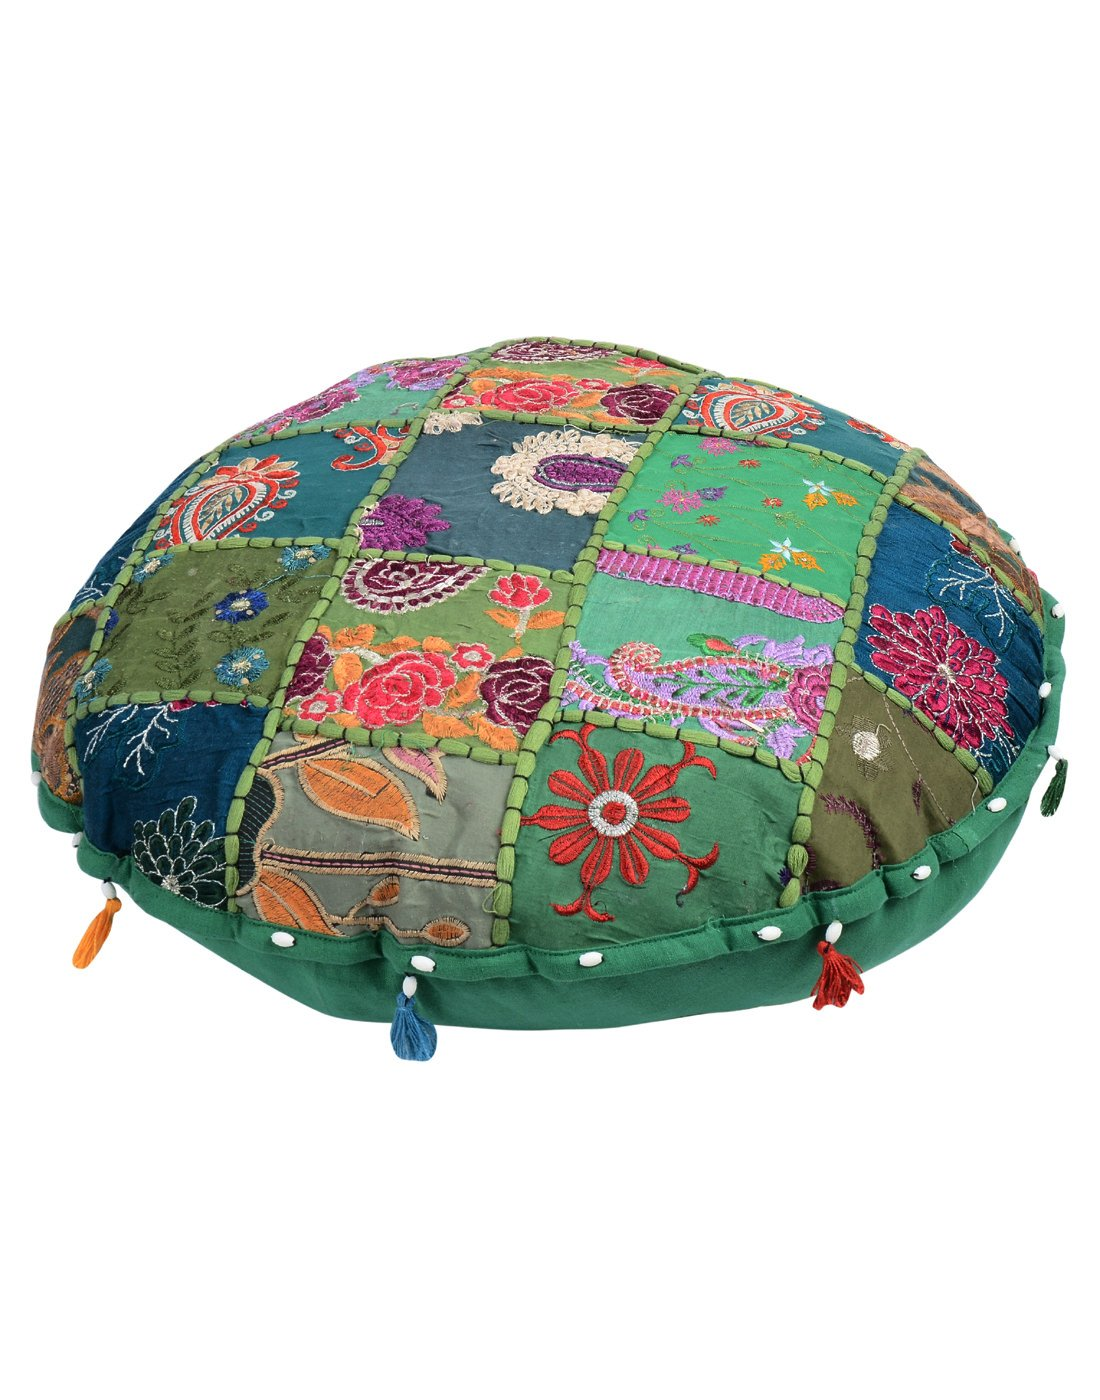 Rajrang Luxurious Green Bean Bag Cover Floral Patch Work Cotton Round Ottoman Cover OTM01364